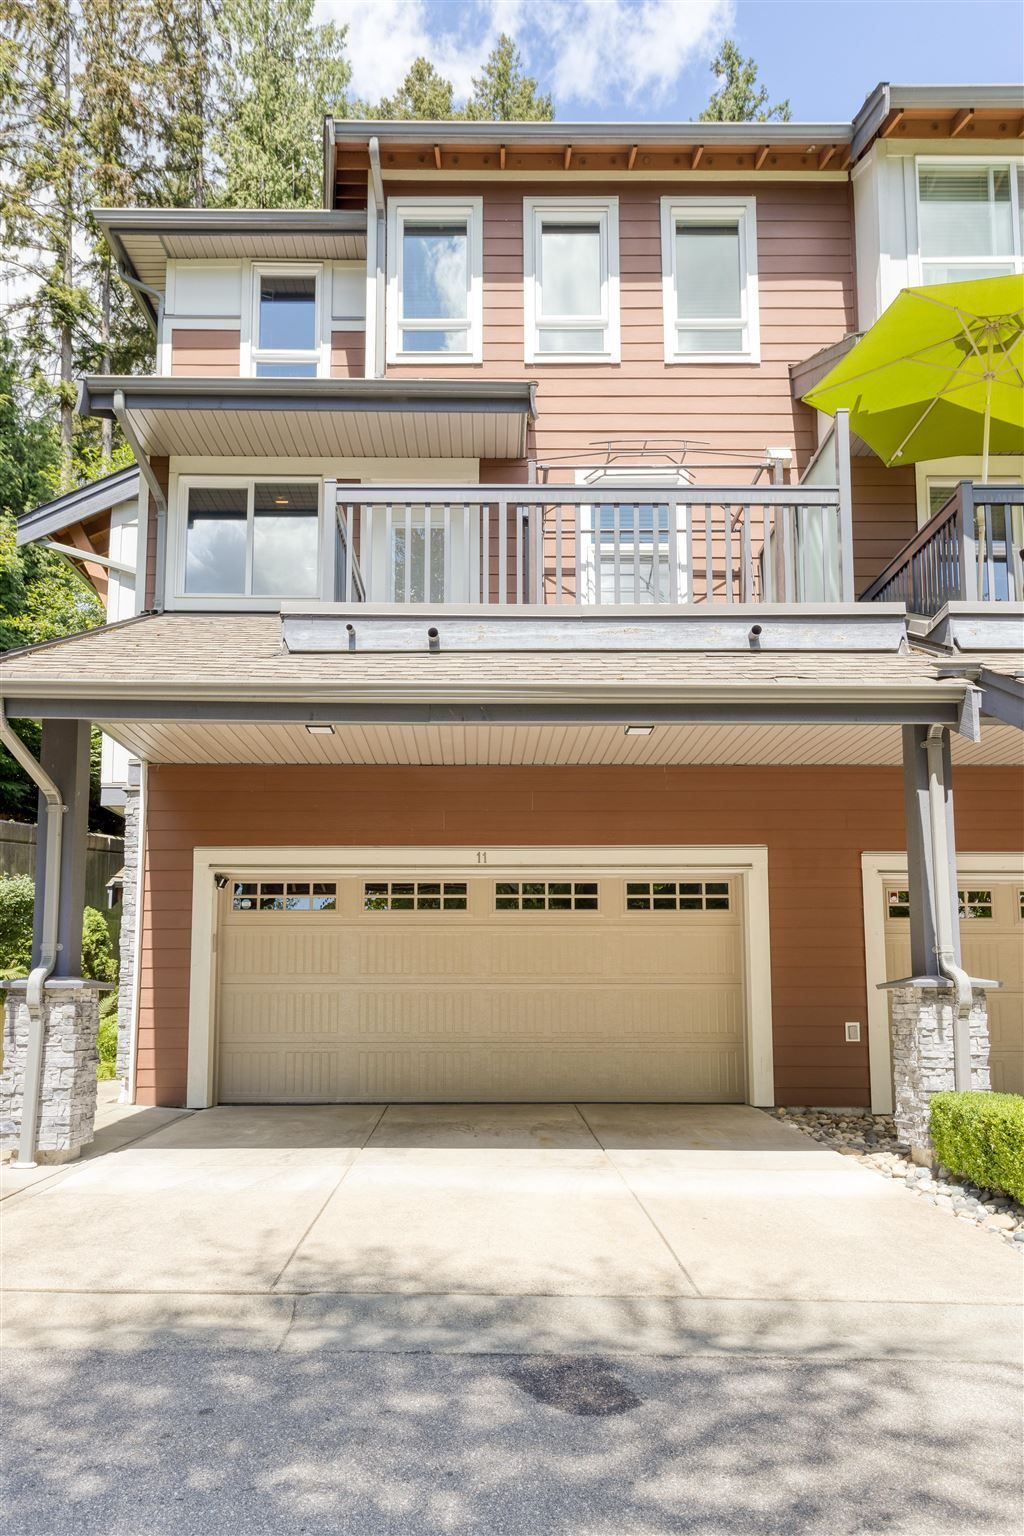 Main Photo: 11 3431 GALLOWAY Avenue in Coquitlam: Burke Mountain Townhouse for sale : MLS®# R2603520